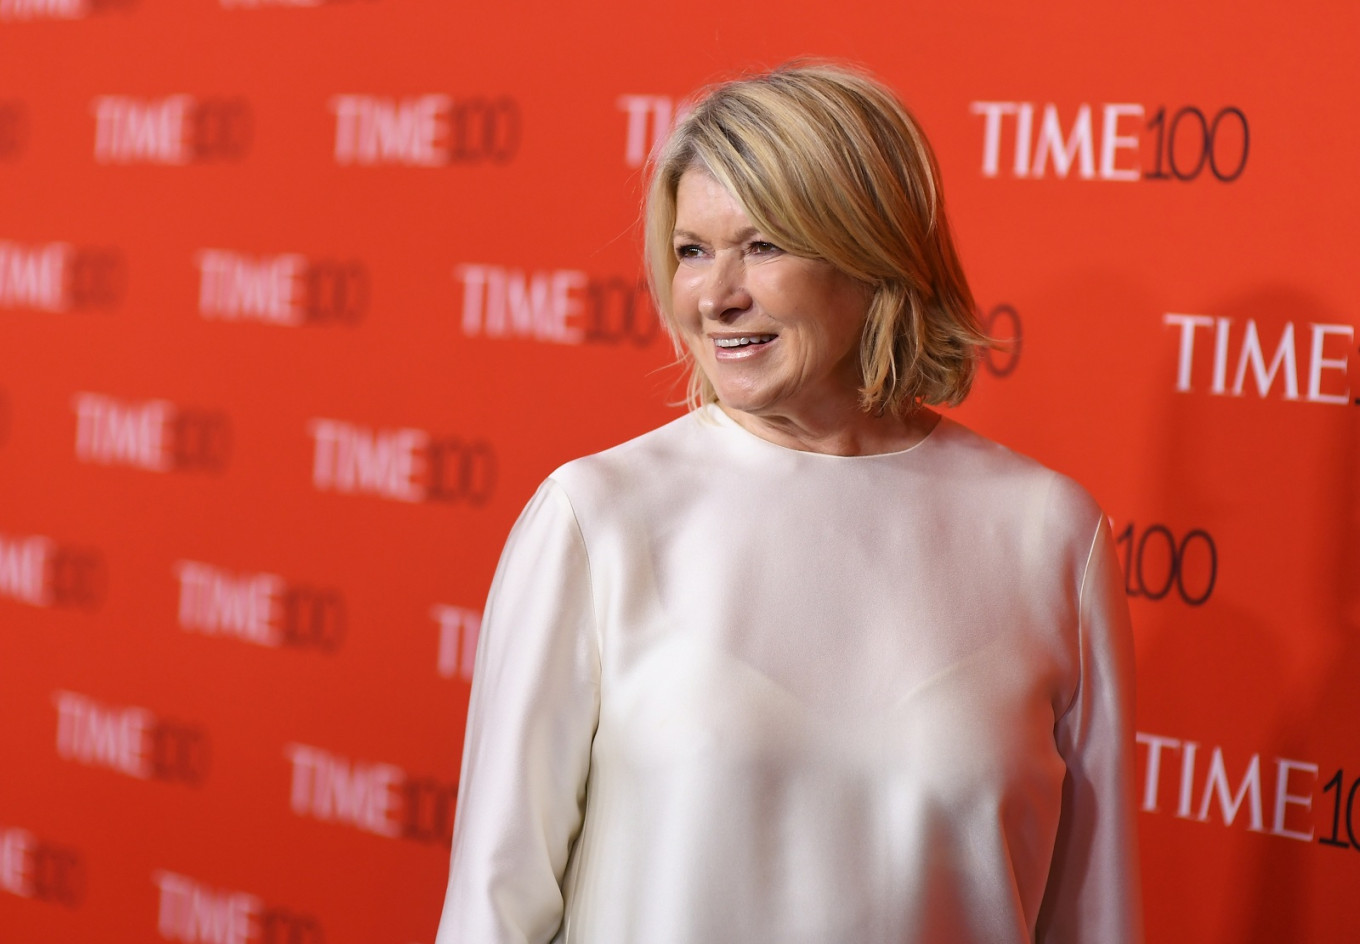 From Whoopi Goldberg to Martha Stewart, celebrities are developing new cannabis ventures